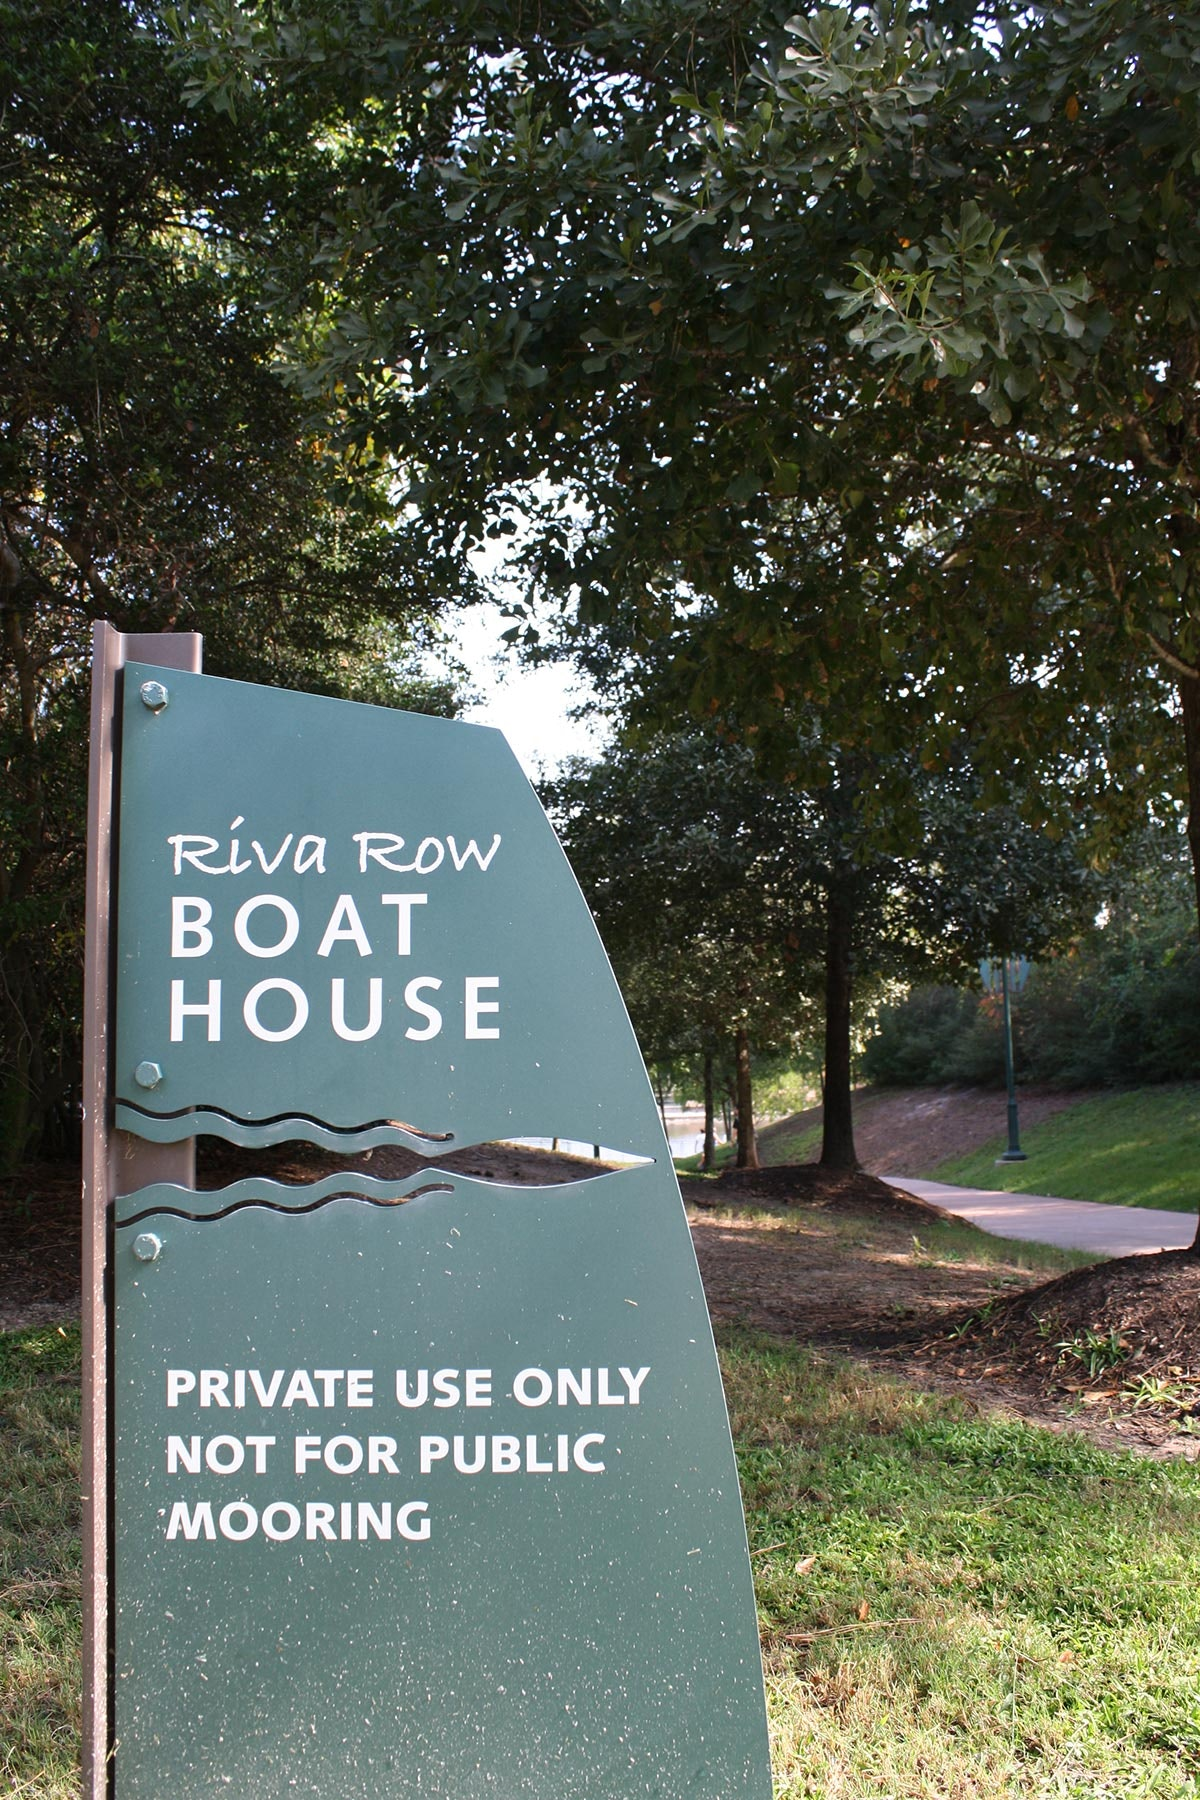 Riva Row Boat House and Riva Row Park